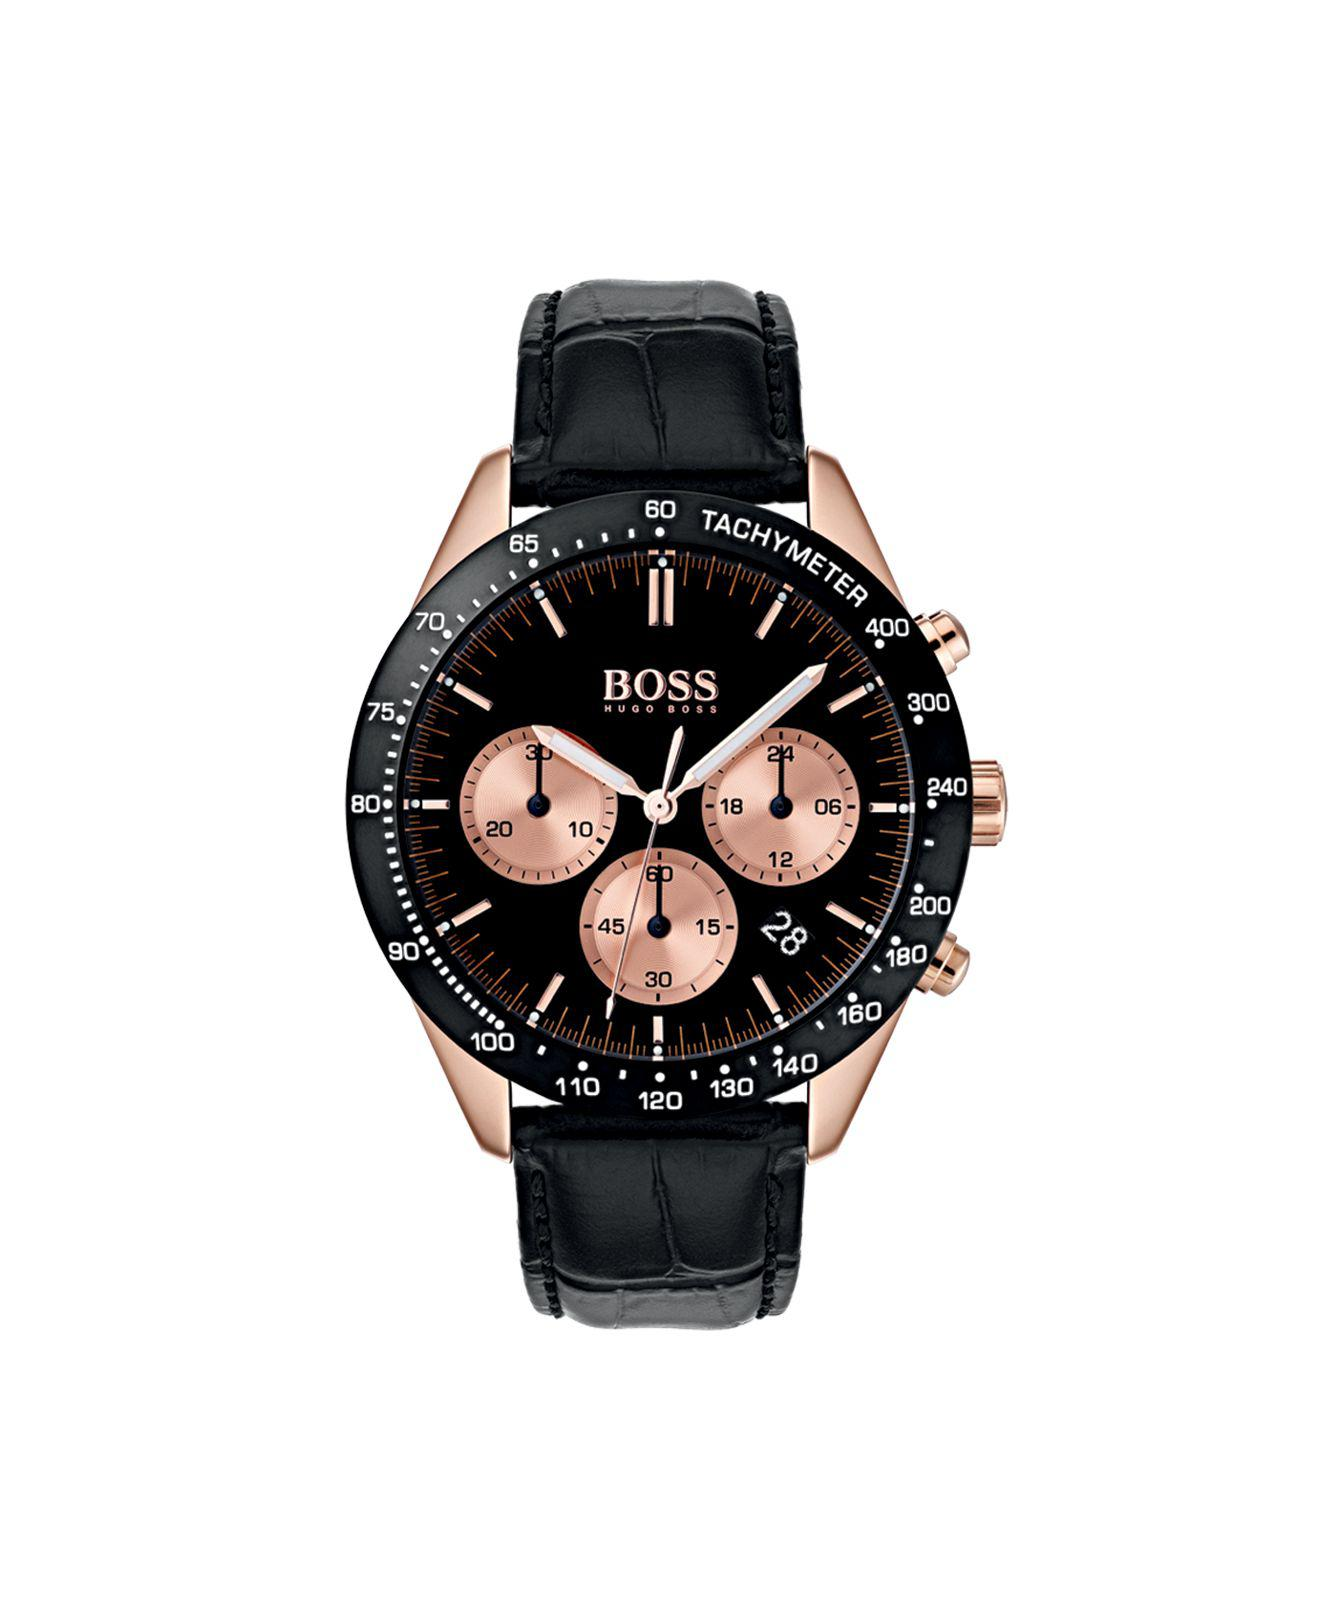 6fa98c87b84 BOSS - Chronograph Watch With Black And Rose-gold Plating for Men - Lyst.  View fullscreen